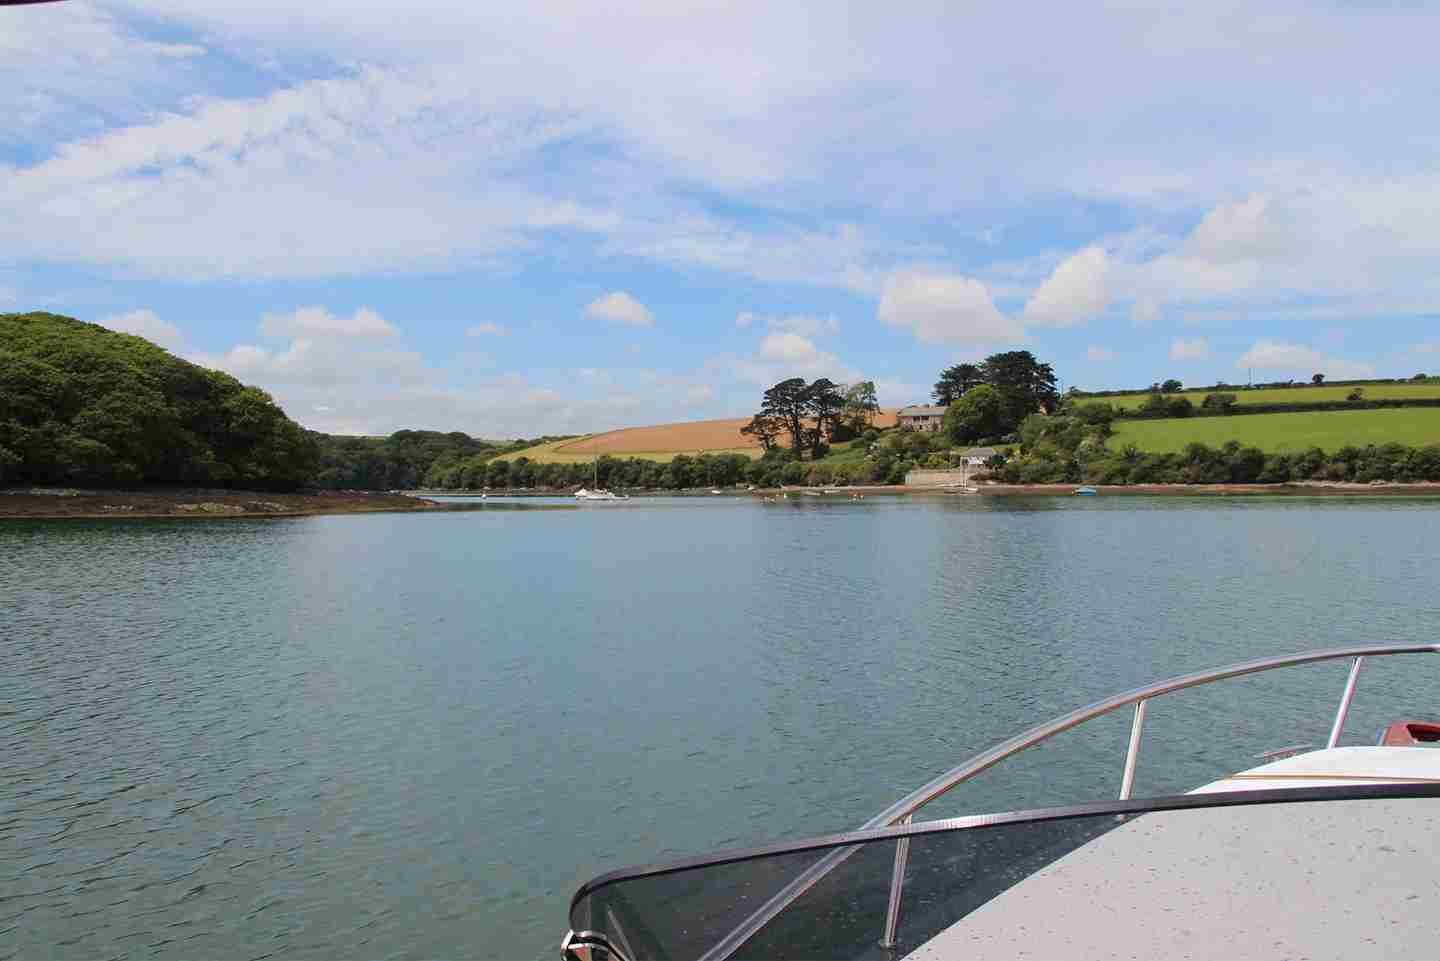 Exploring-remote-areas-of-Cornwall-by-boat.jpg